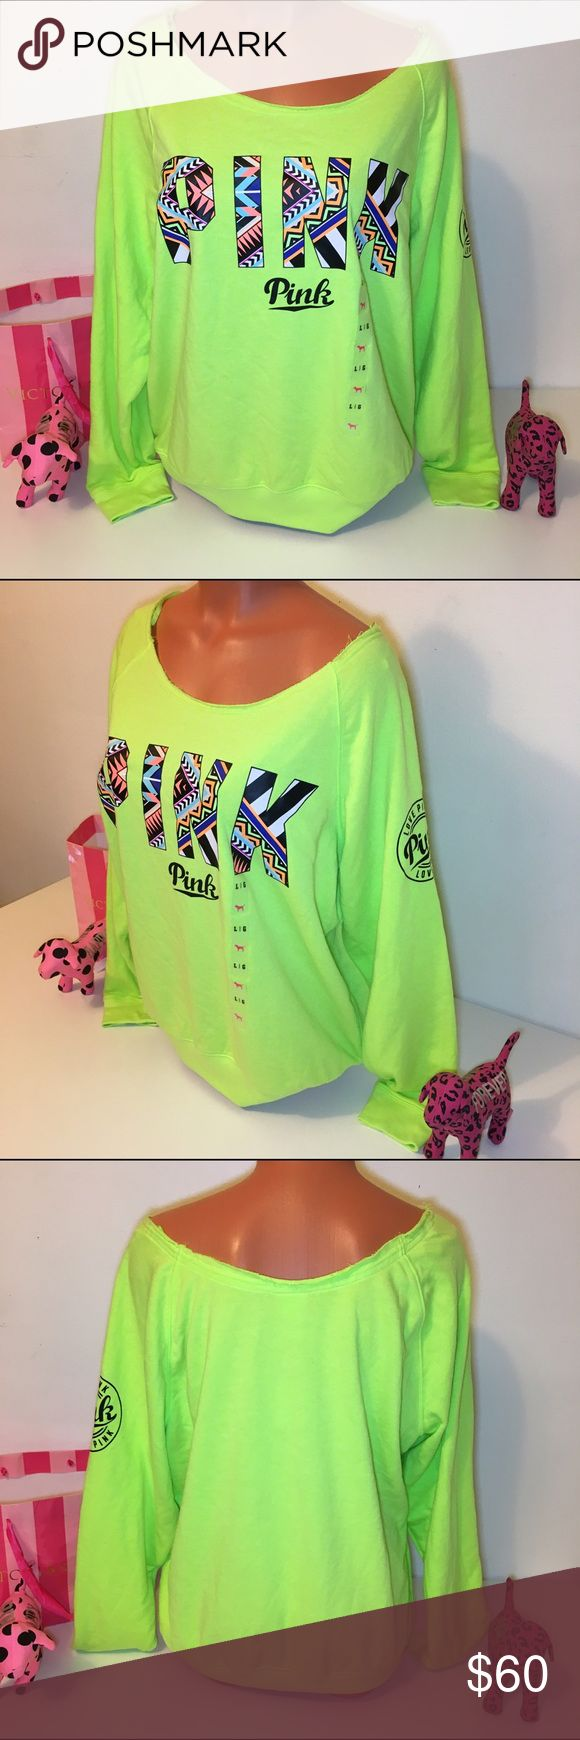 NEW PINK VS SLOUCHY CREWNECK LOGO SWEATSHIRT PINK VICTORIA'S SECRET   SLOUCHY CREWNECK SWEATSHIRT WITH BIG LOGO ON THE FRONT WITH AZTEC PRINT ON IT. SO GORGEOUS!!!  SIZE L   COLOR GREEN    FAST SHIPPING!!!   Check out my other items! I am sure you will find something that you will love it! Thank you for watch!!!!!   Be sure to add me to your favorites list! PINK Victoria's Secret Tops Sweatshirts & Hoodies